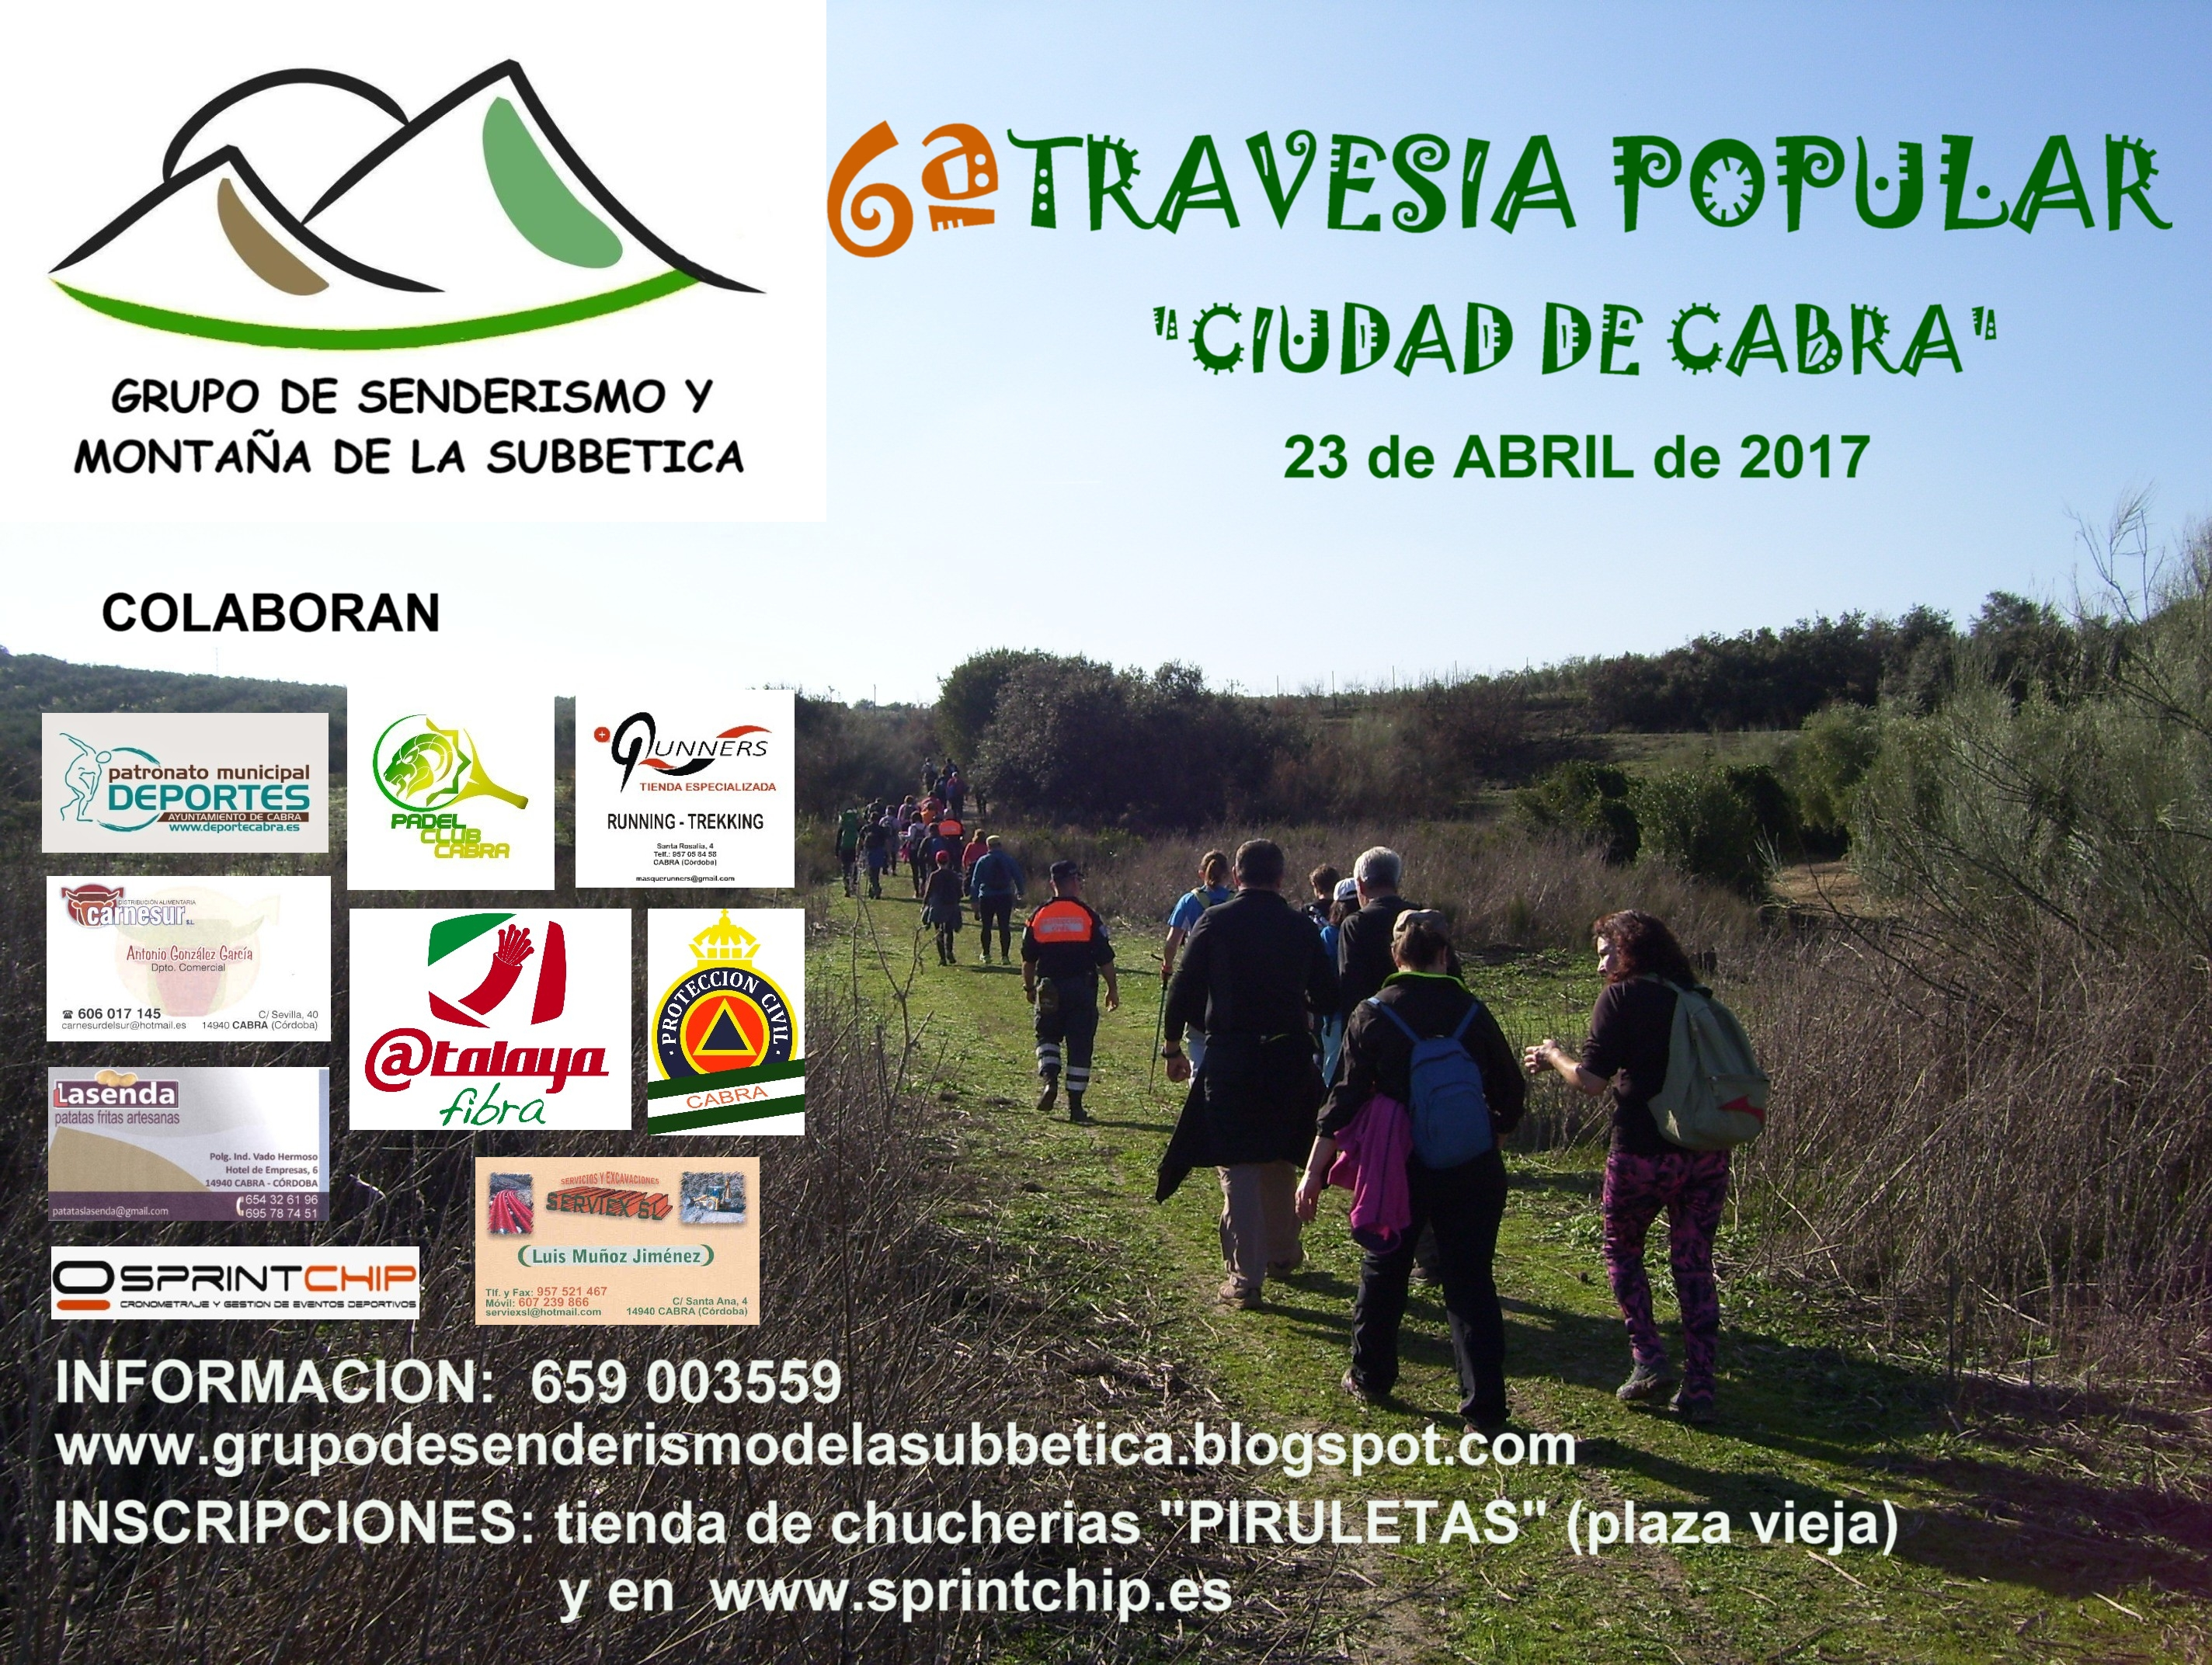 6ª TRAVESIA POPULAR CIUDAD DE CABRA - Sprint Chip